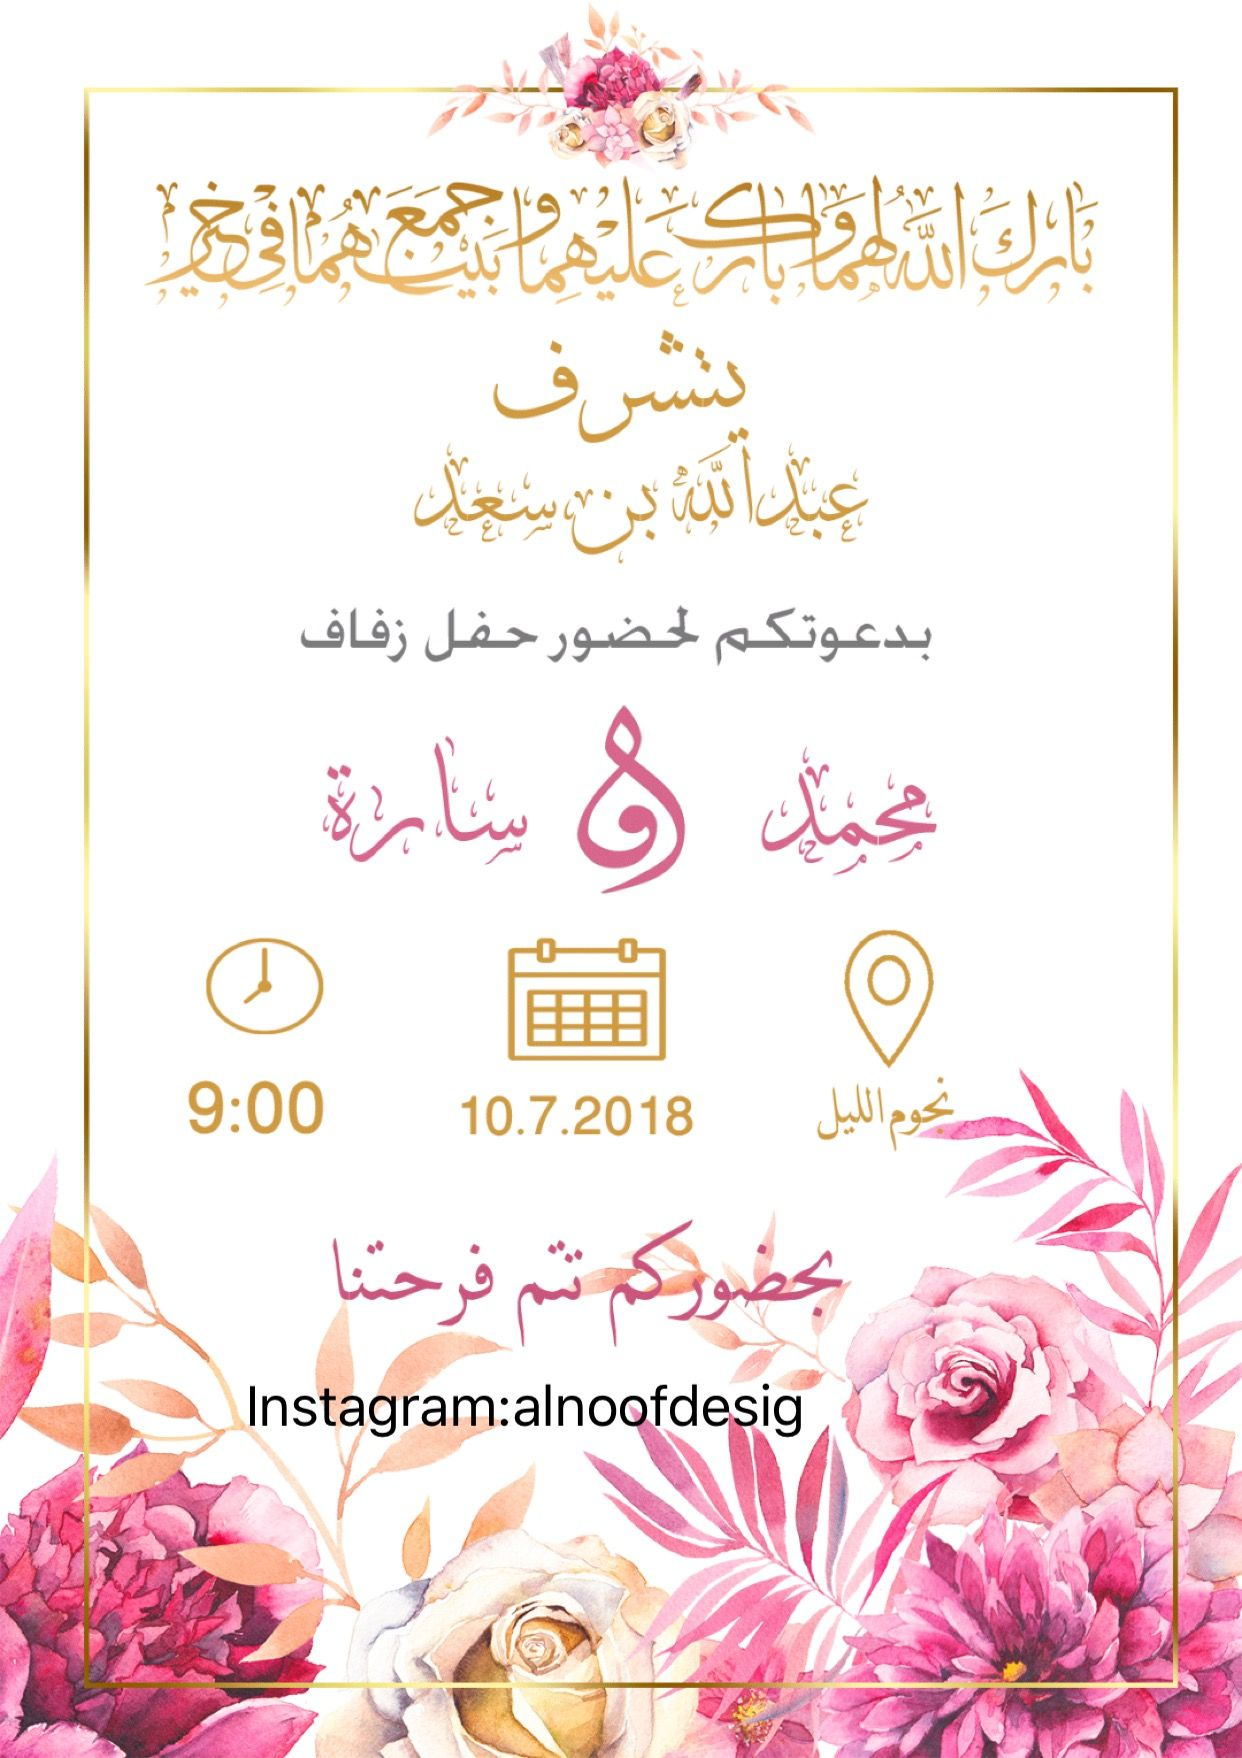 دعوات زفاف الكترونية Bossbabe Wedding Invitation Card Design Wedding Card Frames Engagement Invitation Cards